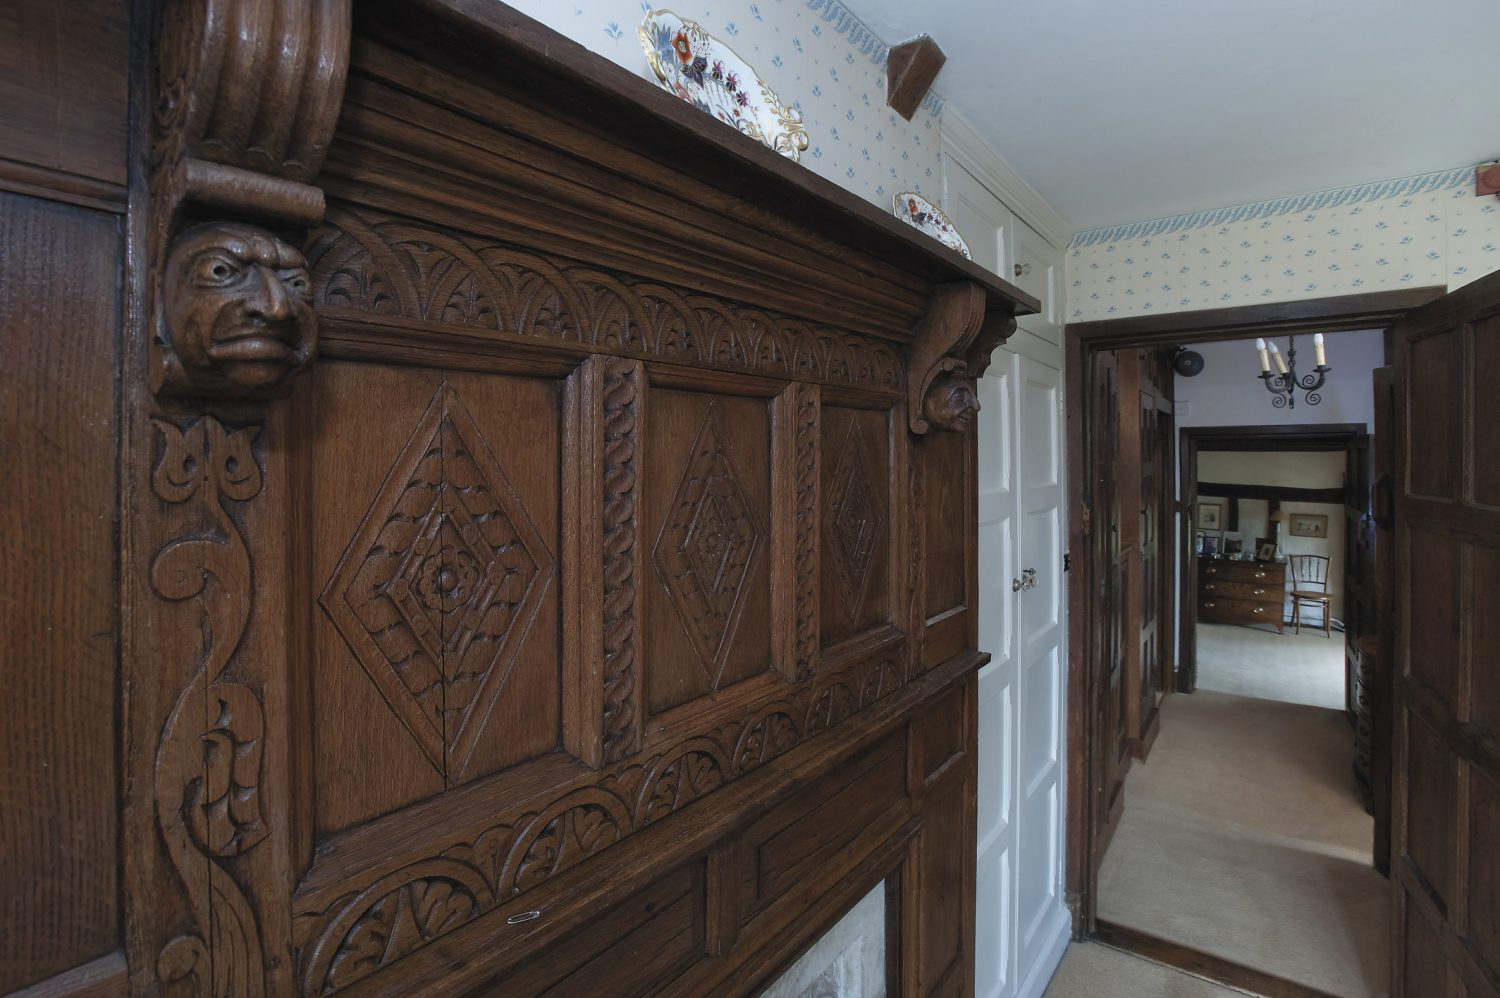 the central reception room is typically Tudor with its dark oak panelling, and linen-fold carving